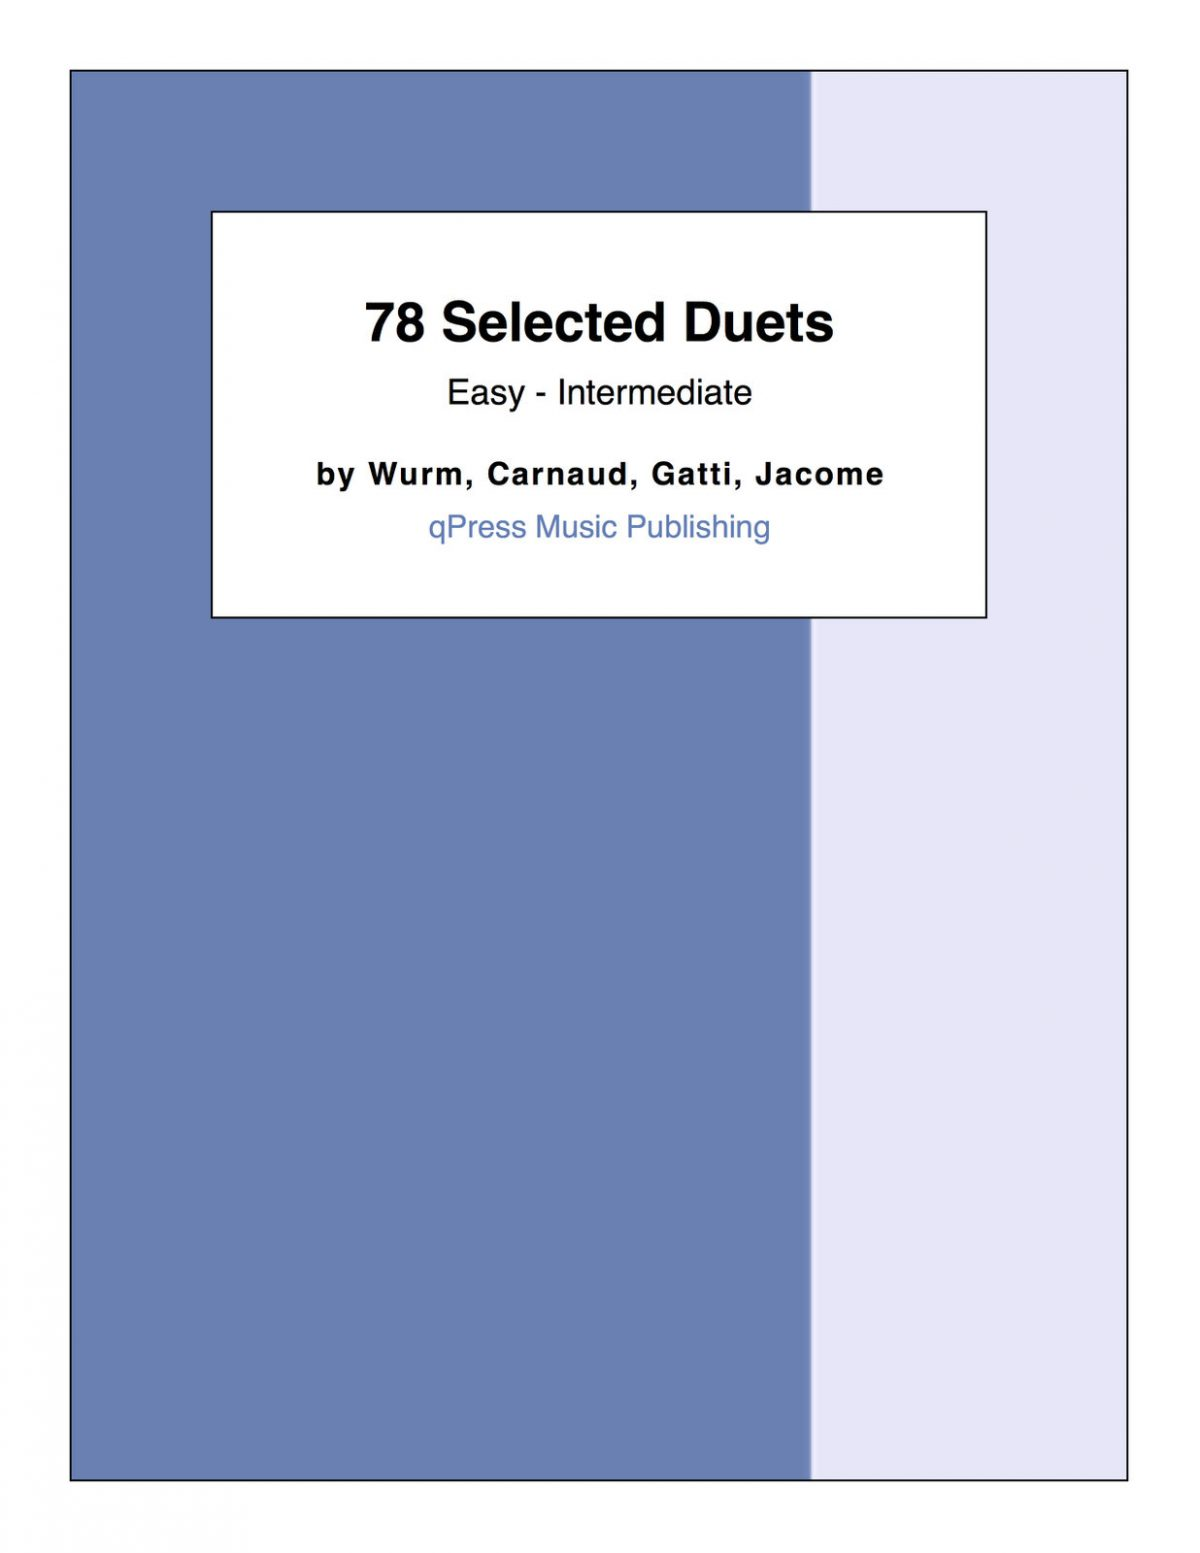 78 Selected Duets (Beginner to Intermediate)-1